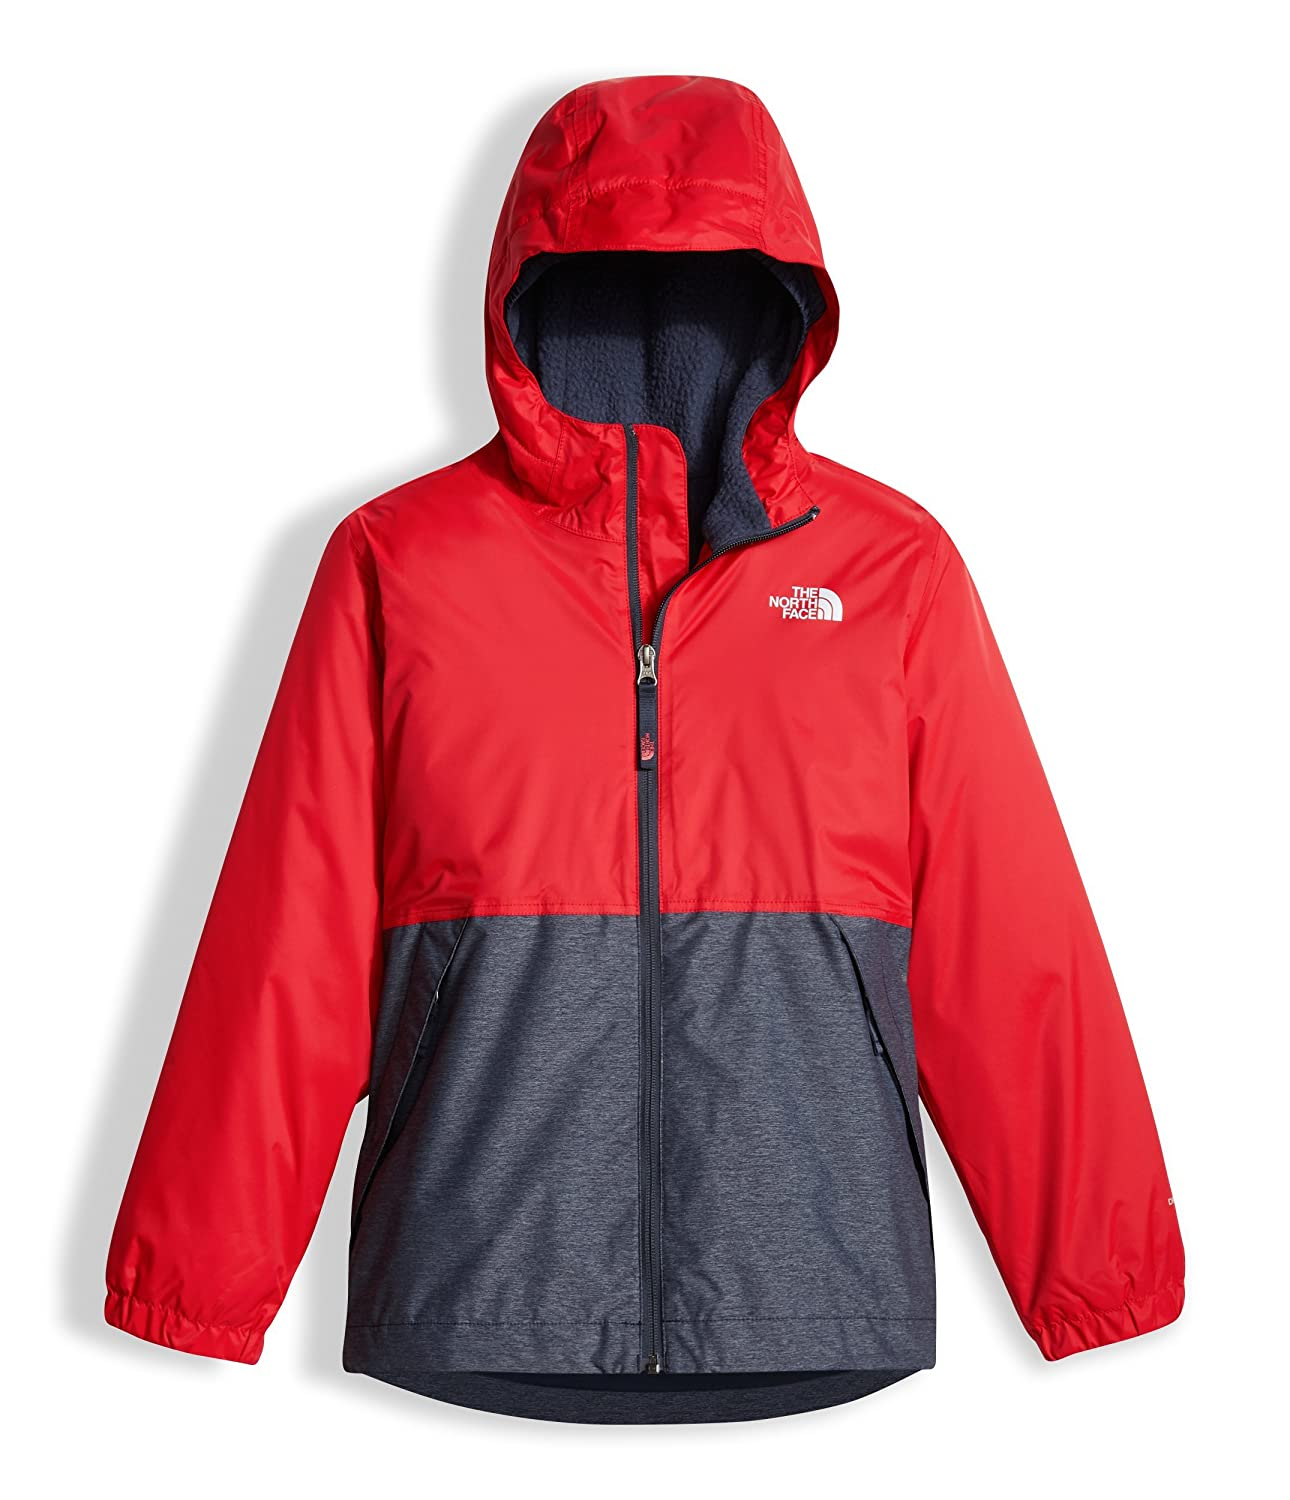 The North Face Boy's Warm Storm Jacket NF0A34Q9